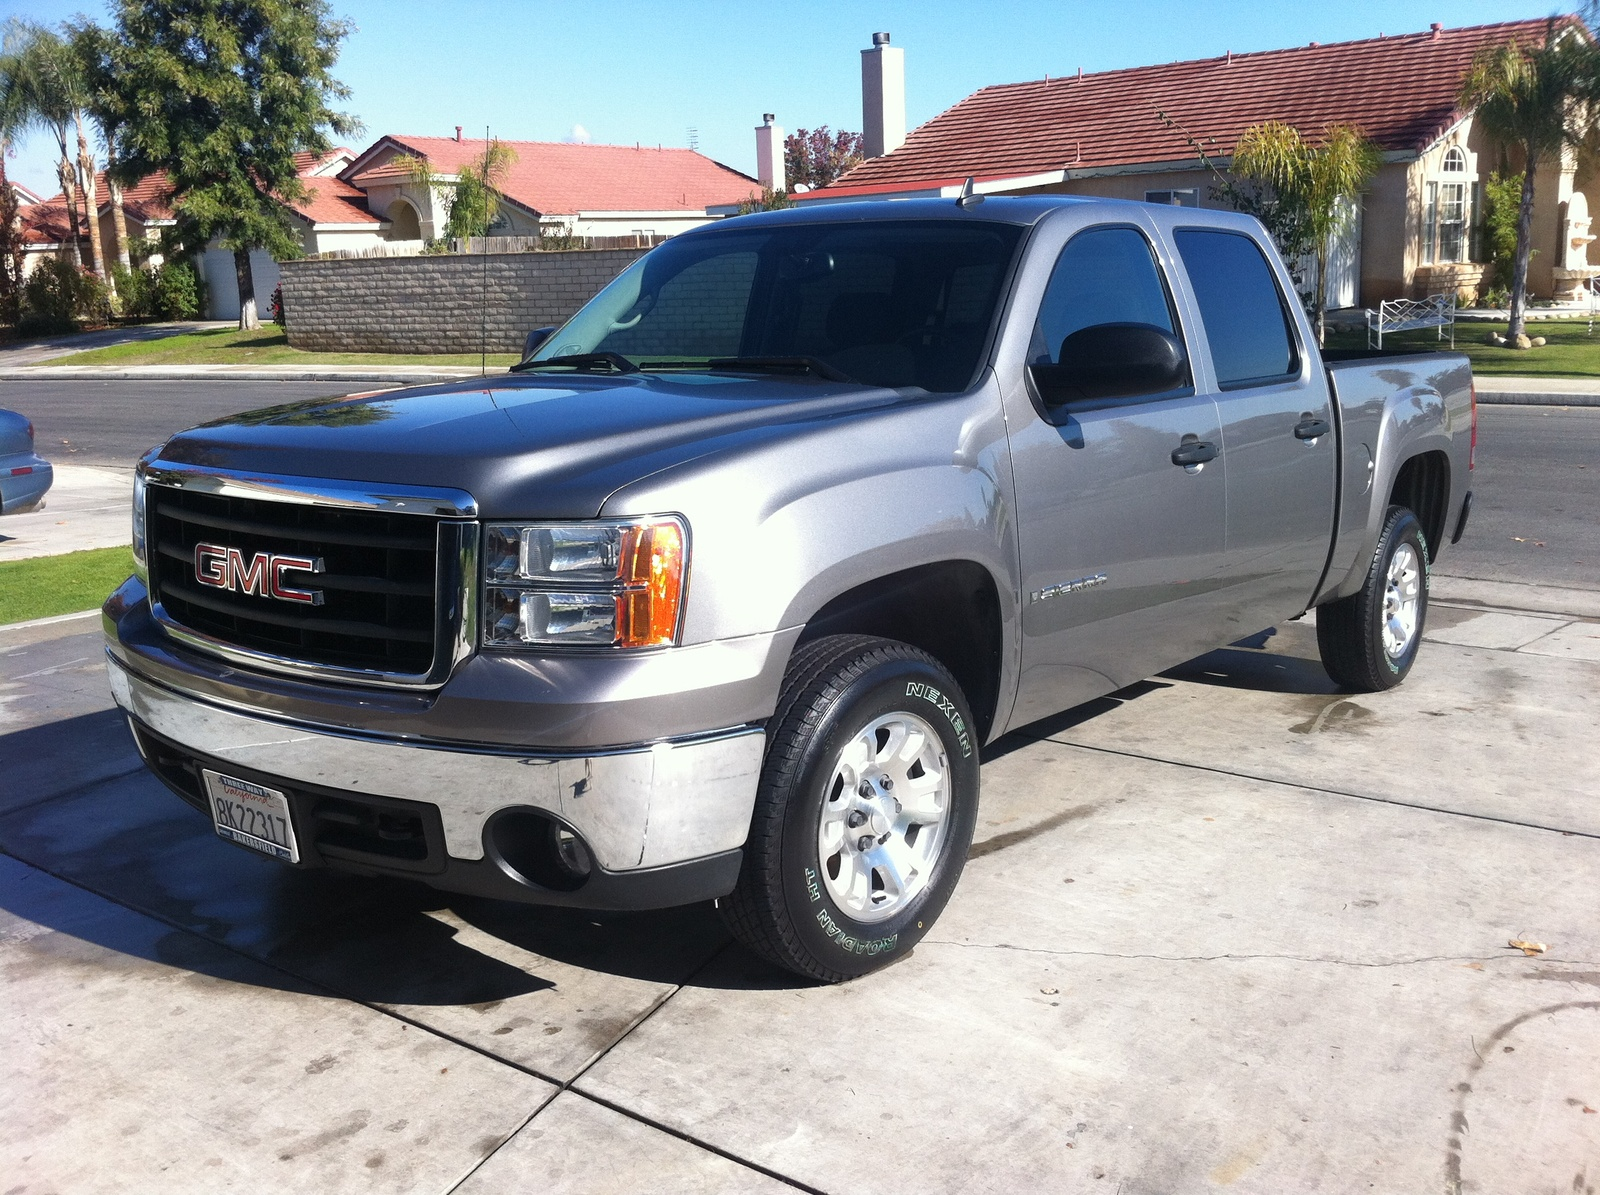 2007 GMC Sierra photo - 1